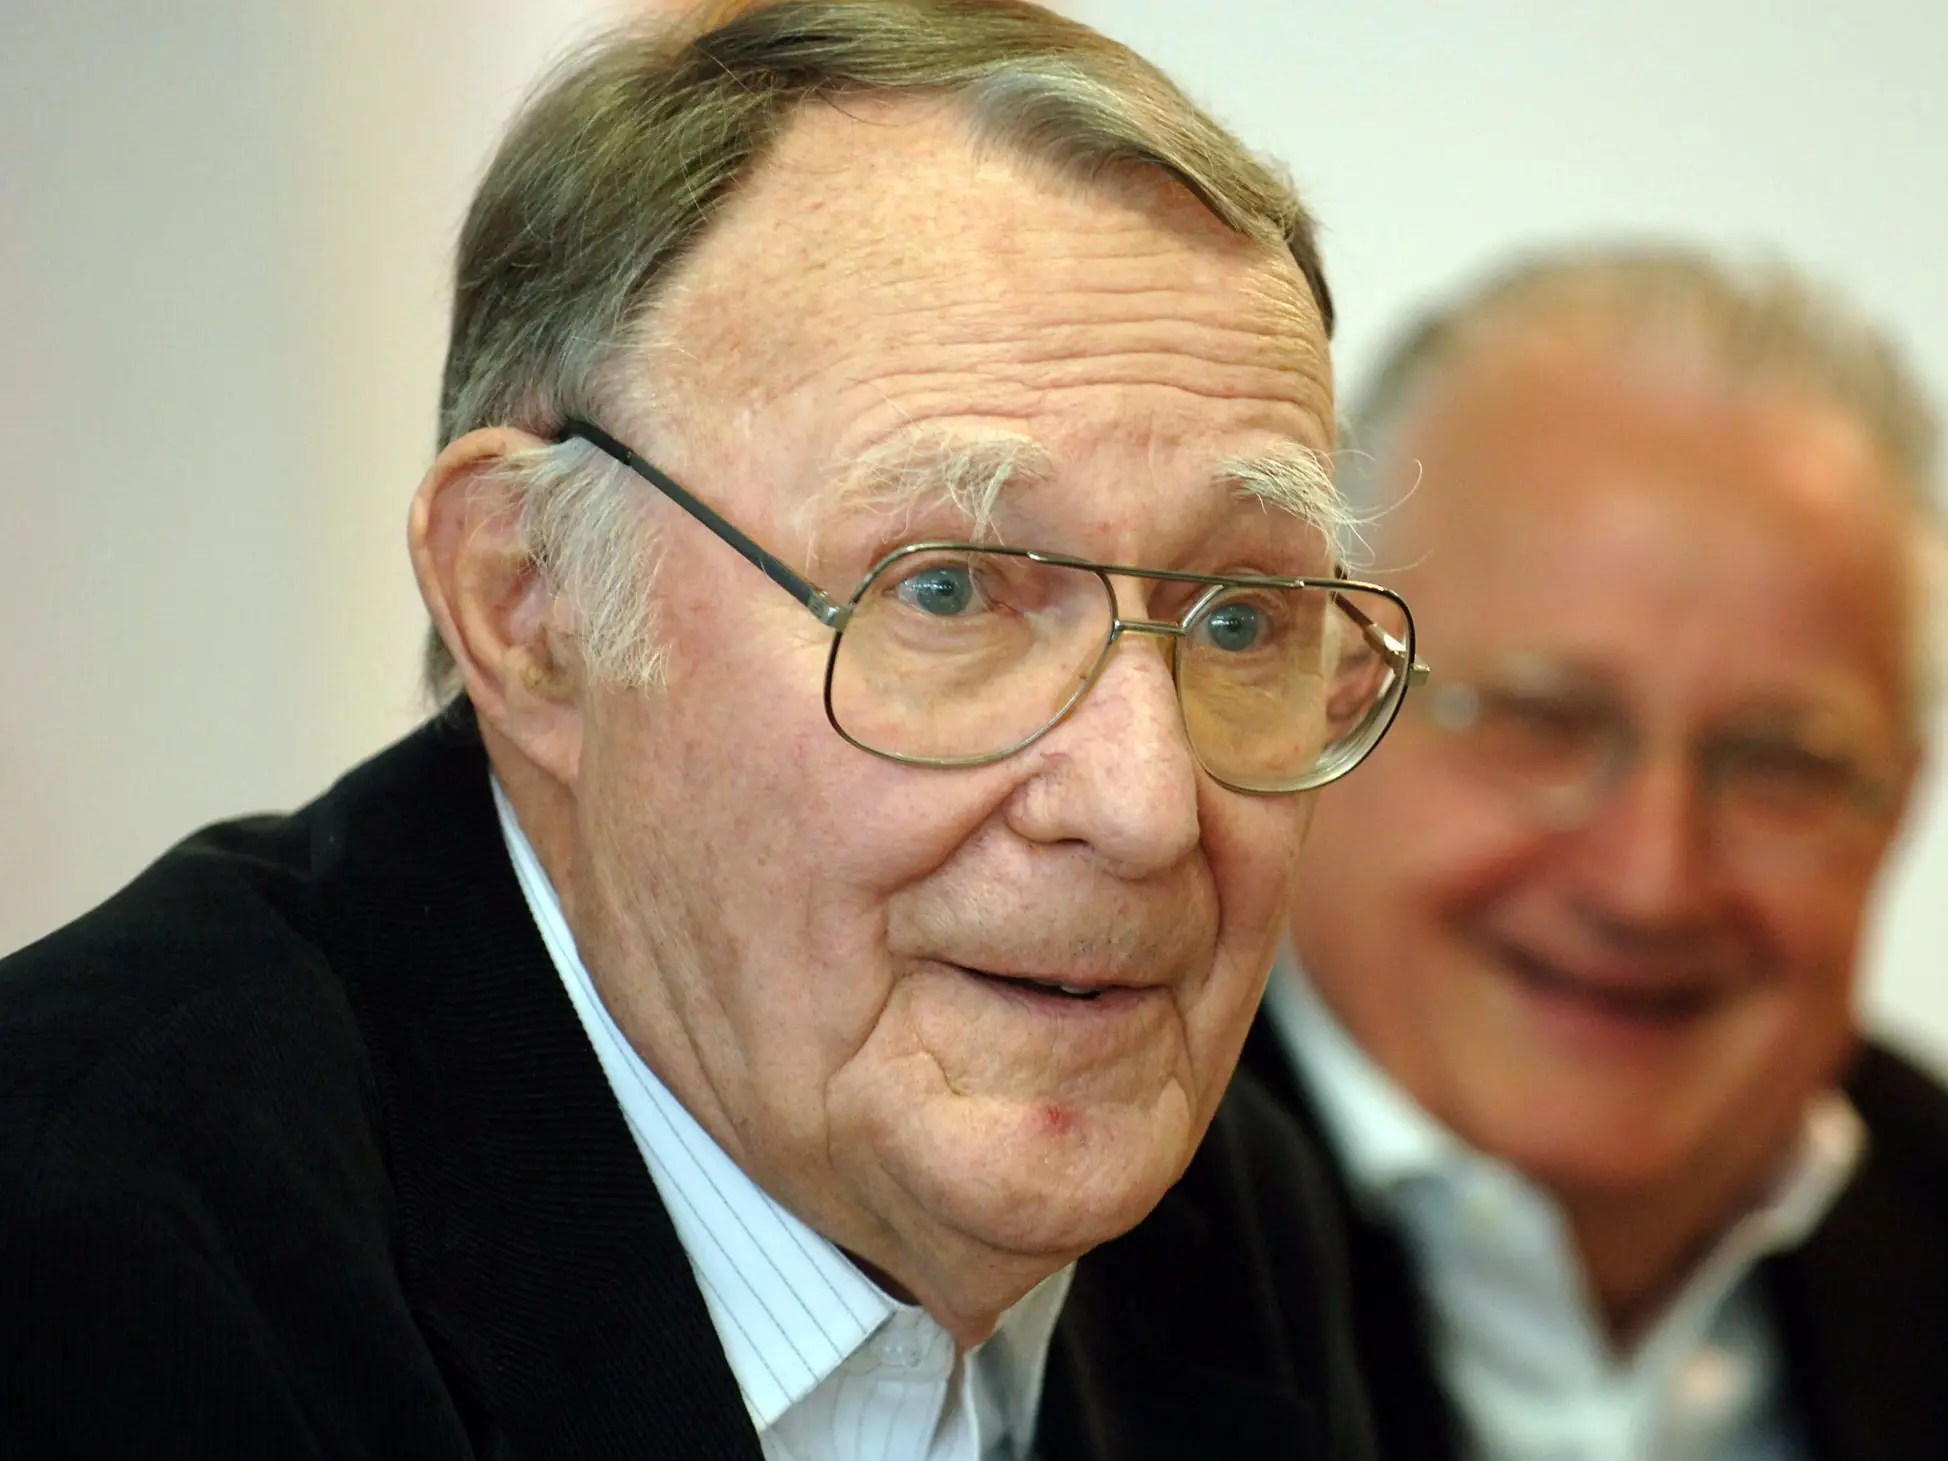 Ingvar Kamprad was born in a small village in Sweden and created a mail-order business that became IKEA.